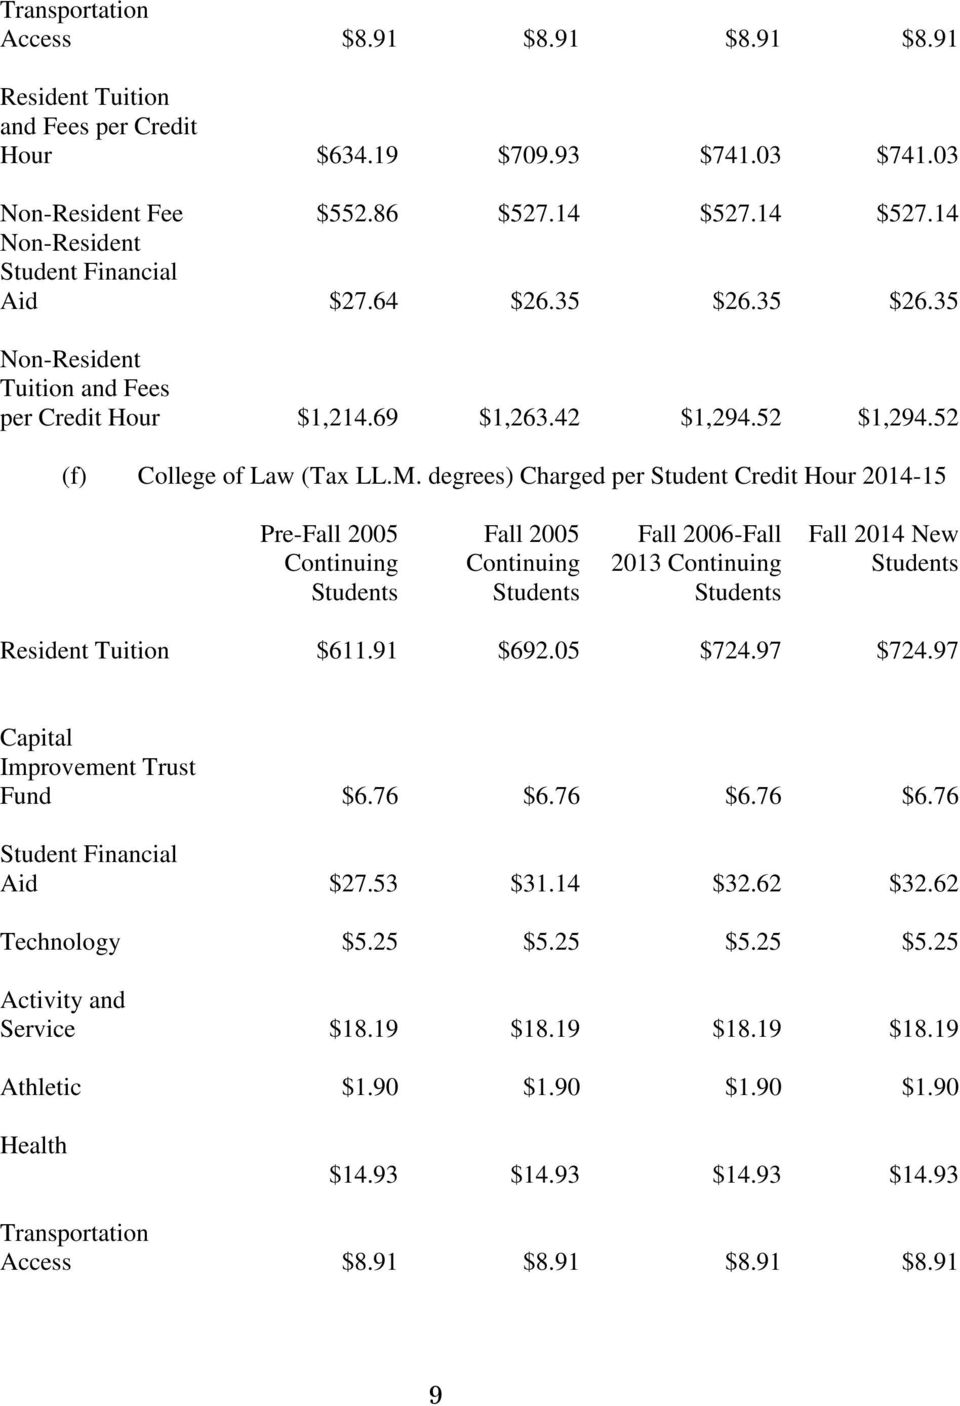 degrees) Charged per Student Credit Hour 2014-15 Pre-Fall 2005 Fall 2005 Fall 2006-Fall 2013 Fall 2014 New $611.91 $692.05 $724.97 $724.